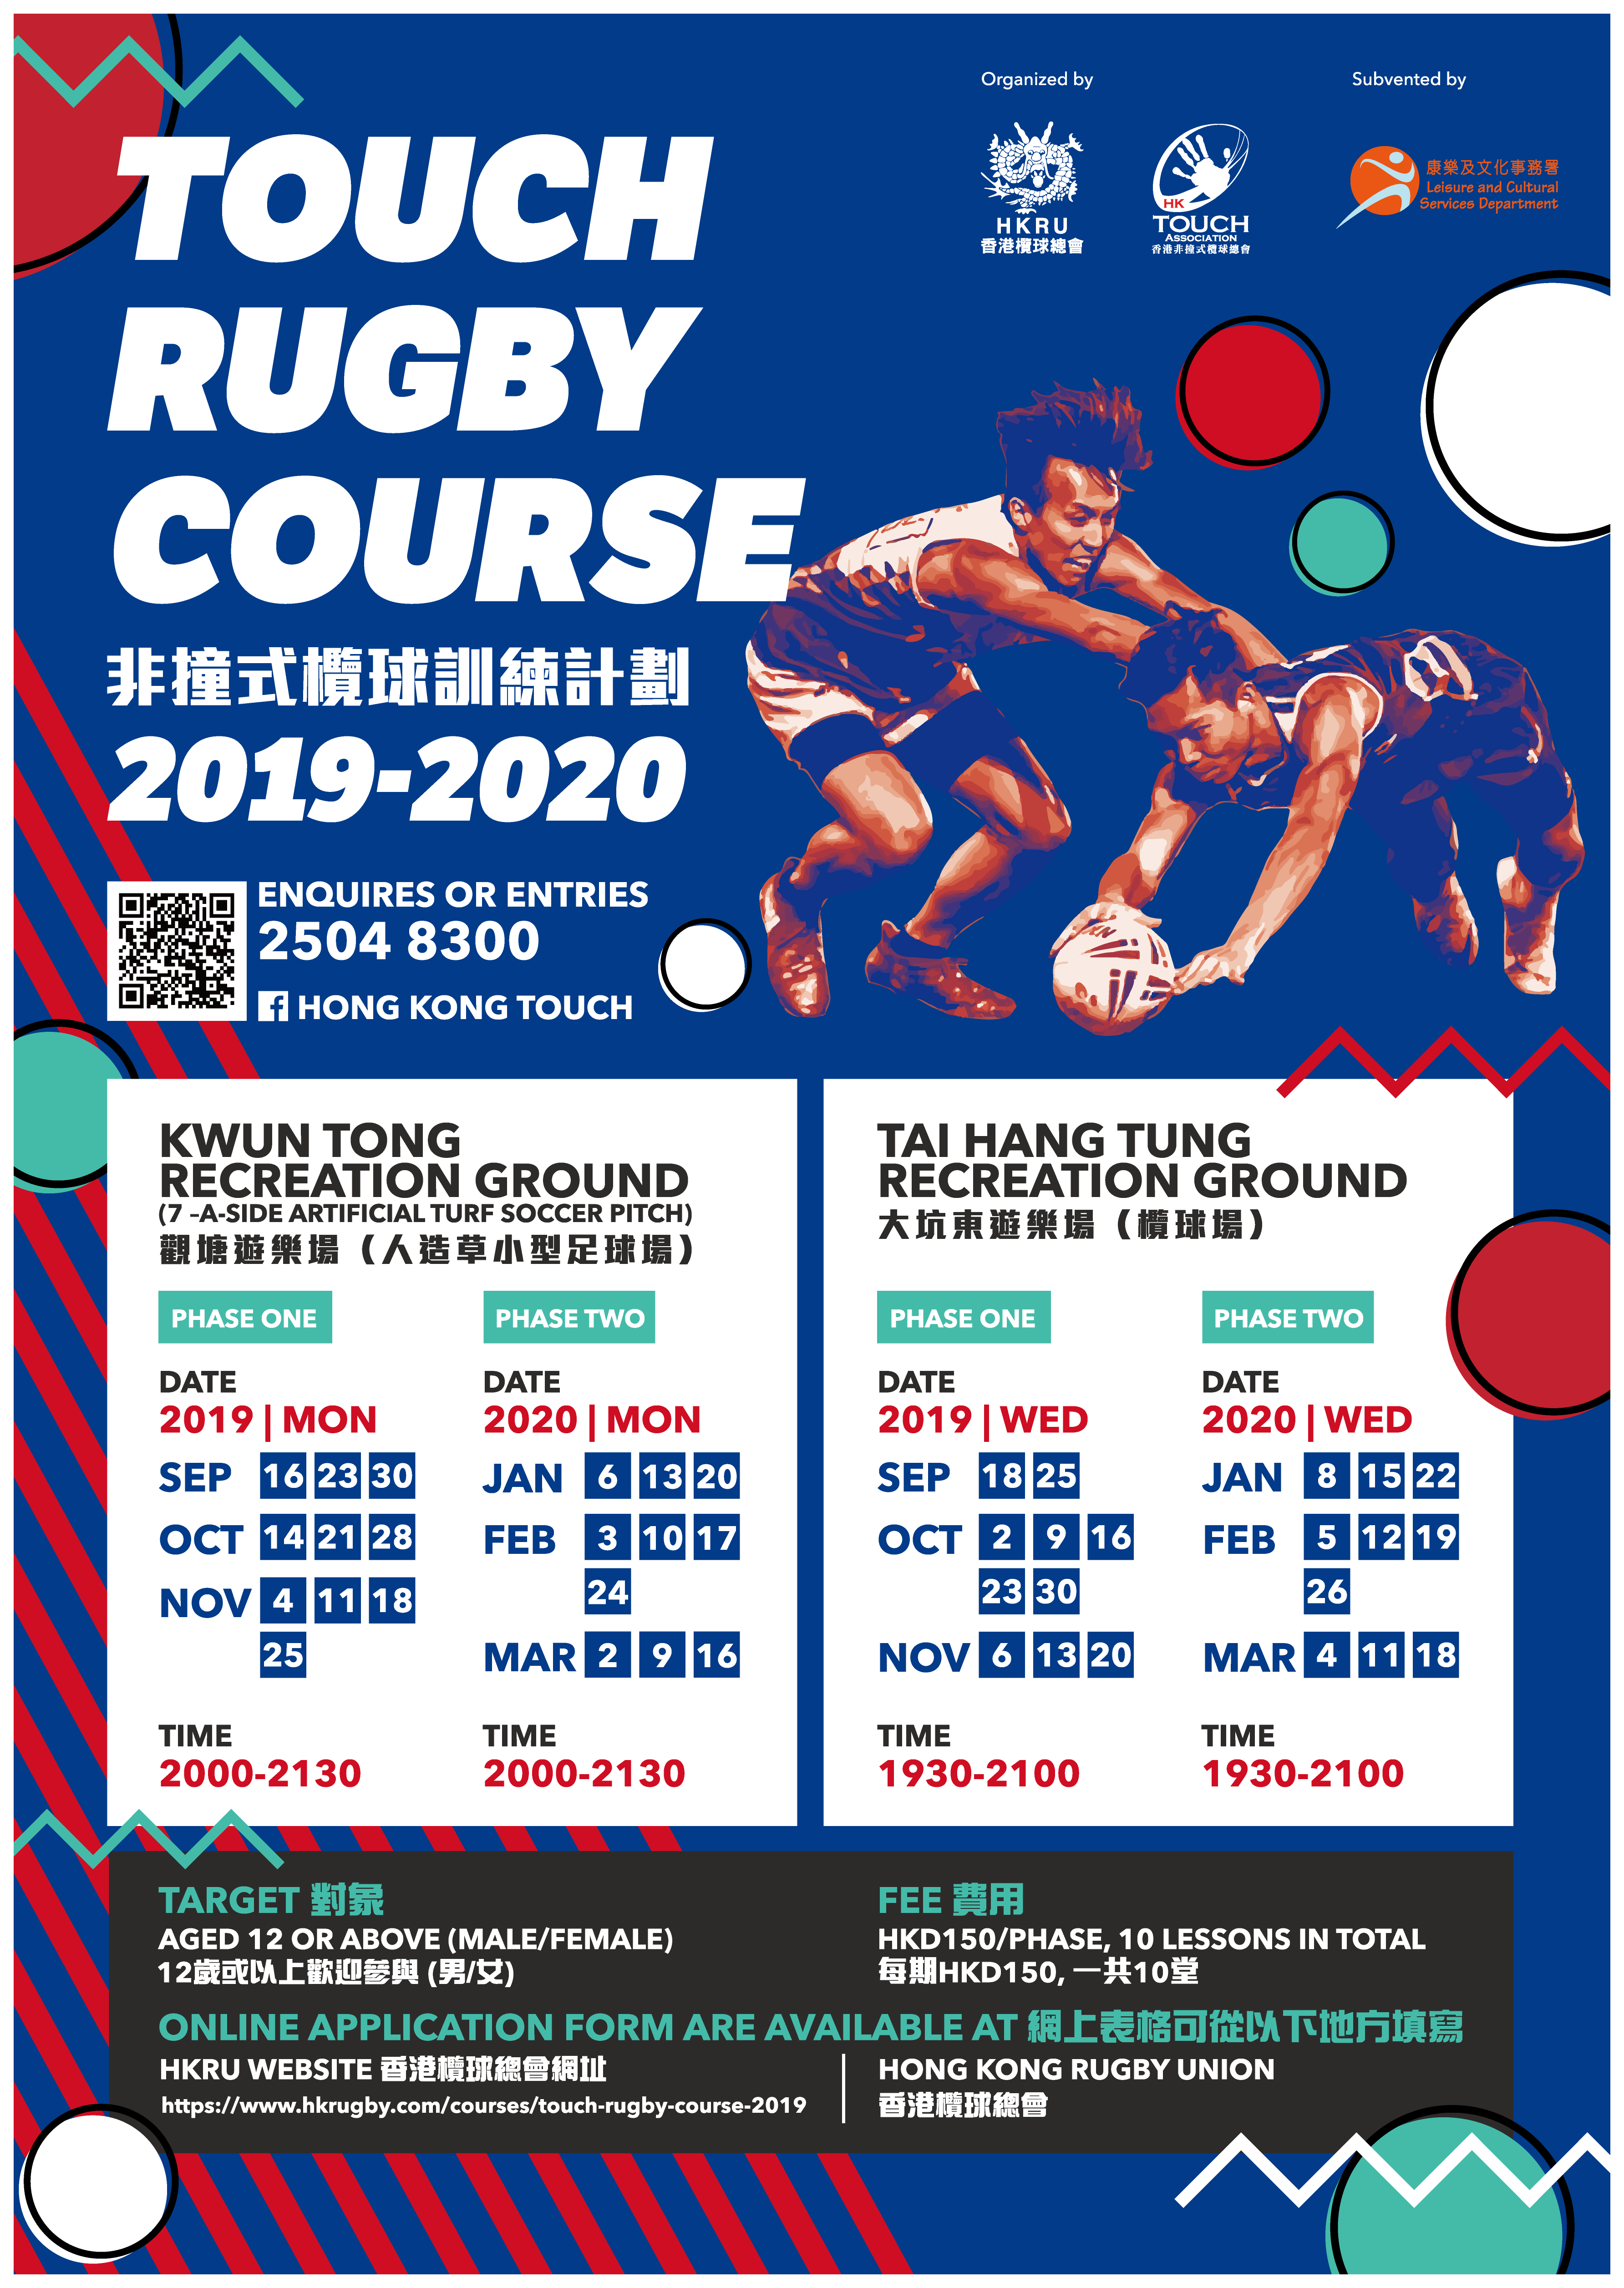 Touch Rugby Course 2019 - 2020 thumbnail